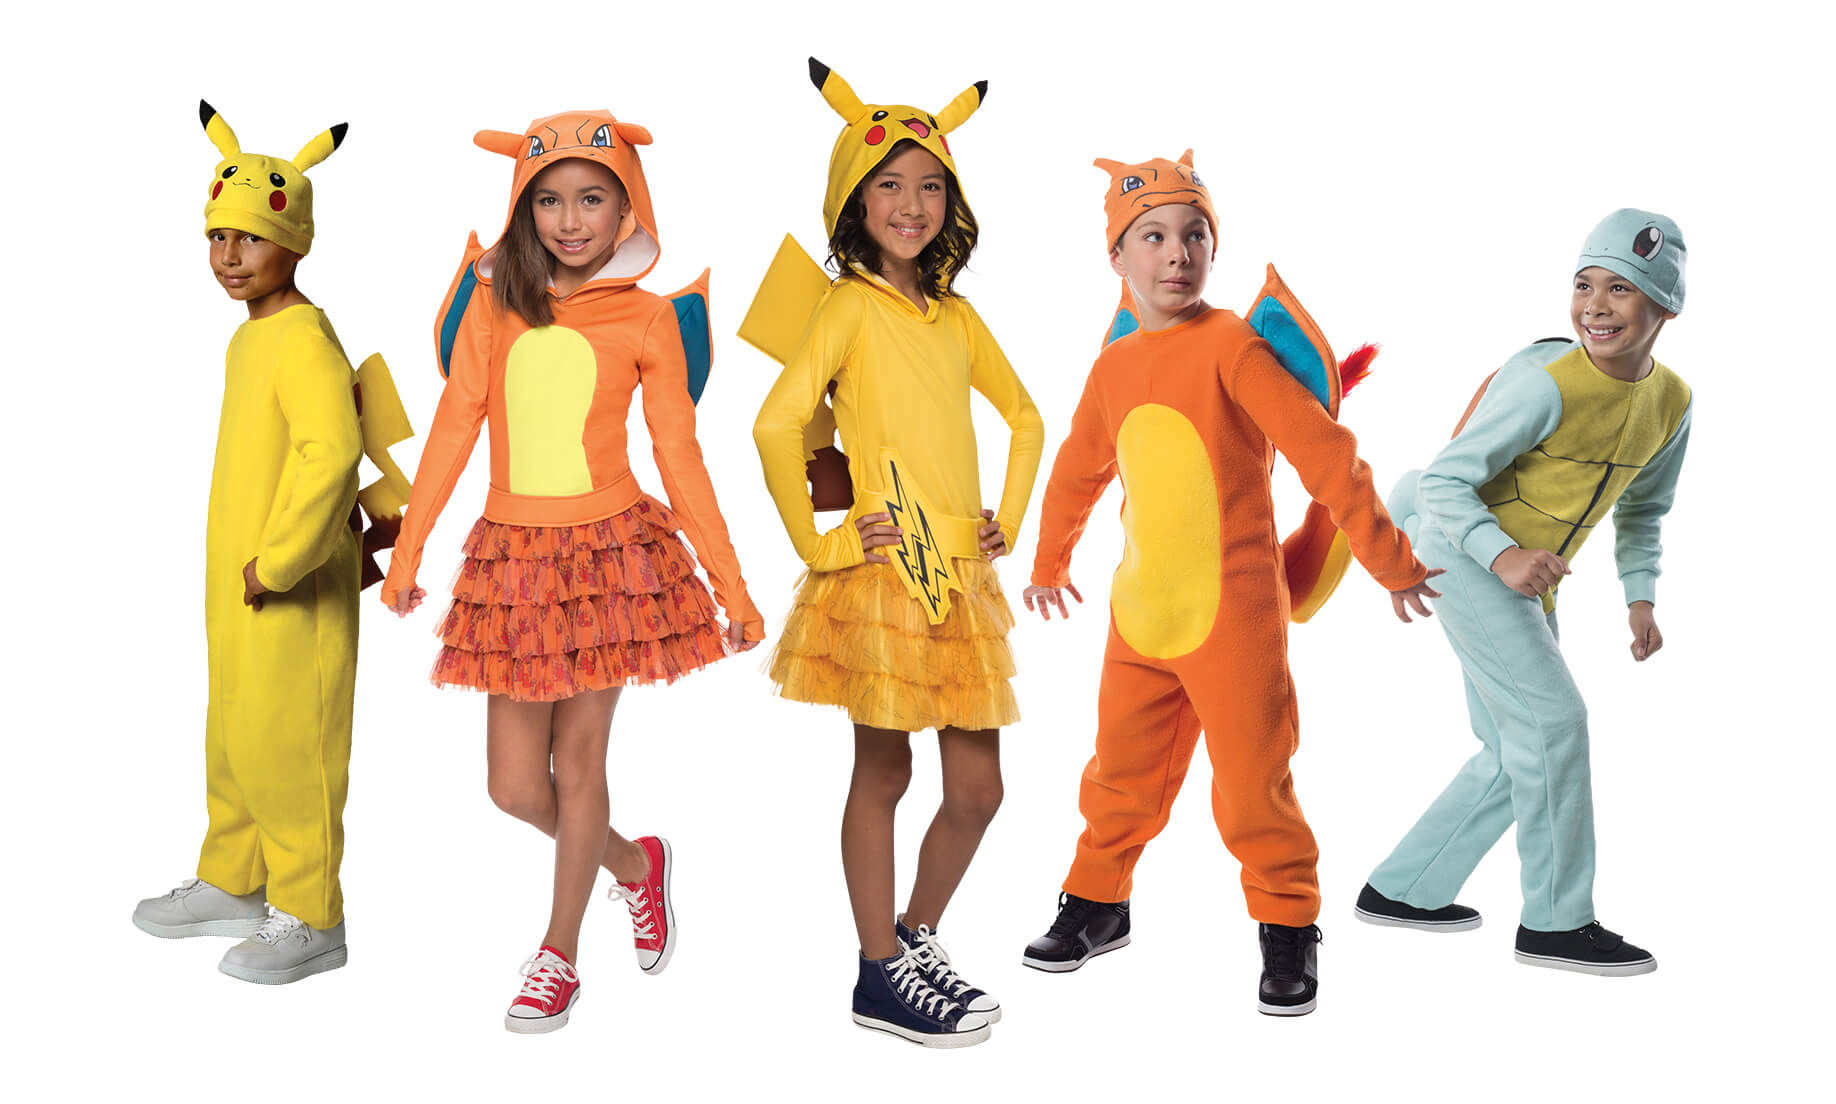 Pokémon Go Halloween Costume Ideas - Halloween Costumes Blog